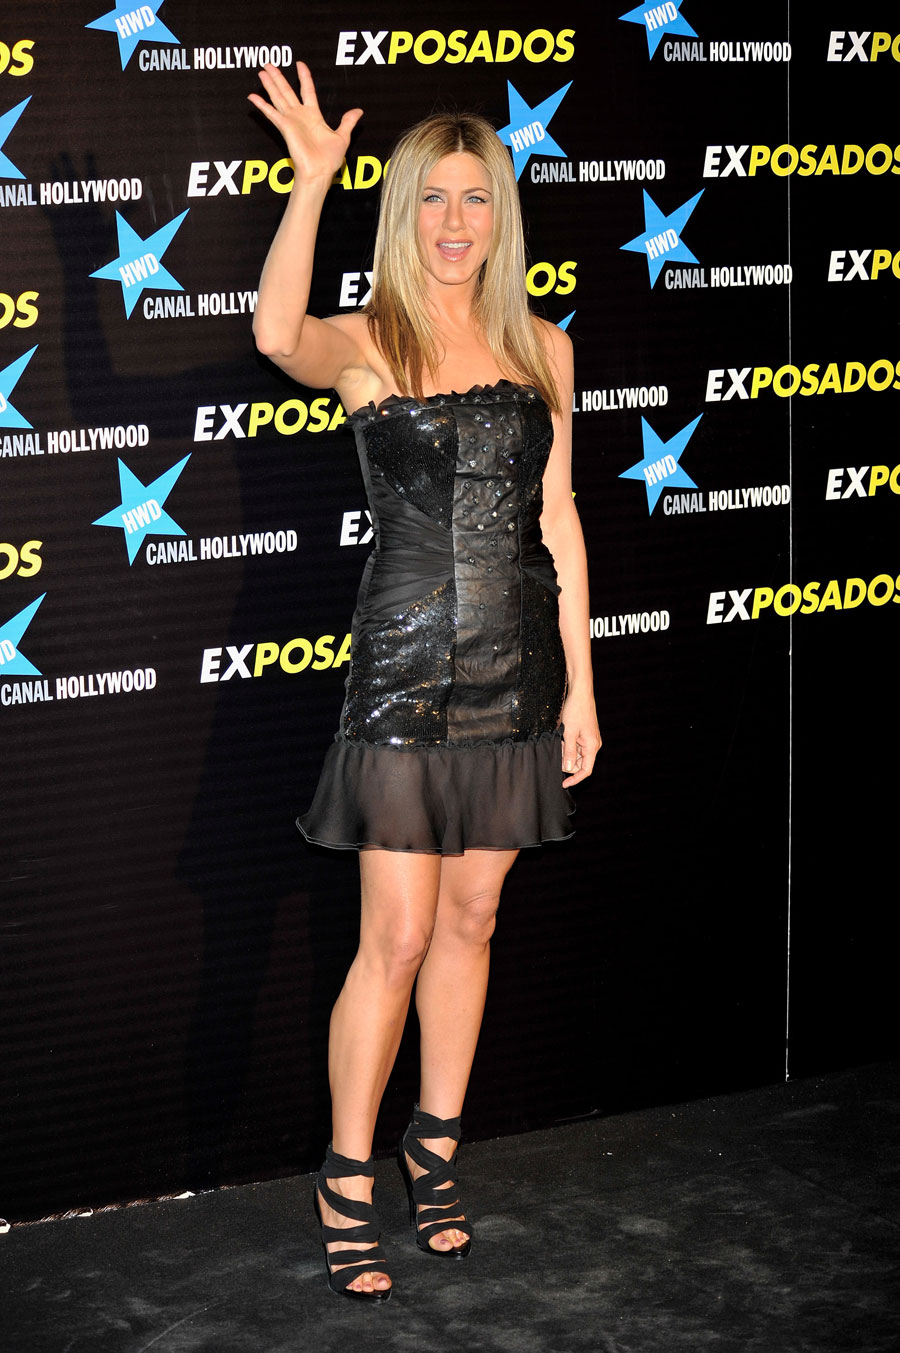 2010-03-30-JENNIFERANISTON.jpg